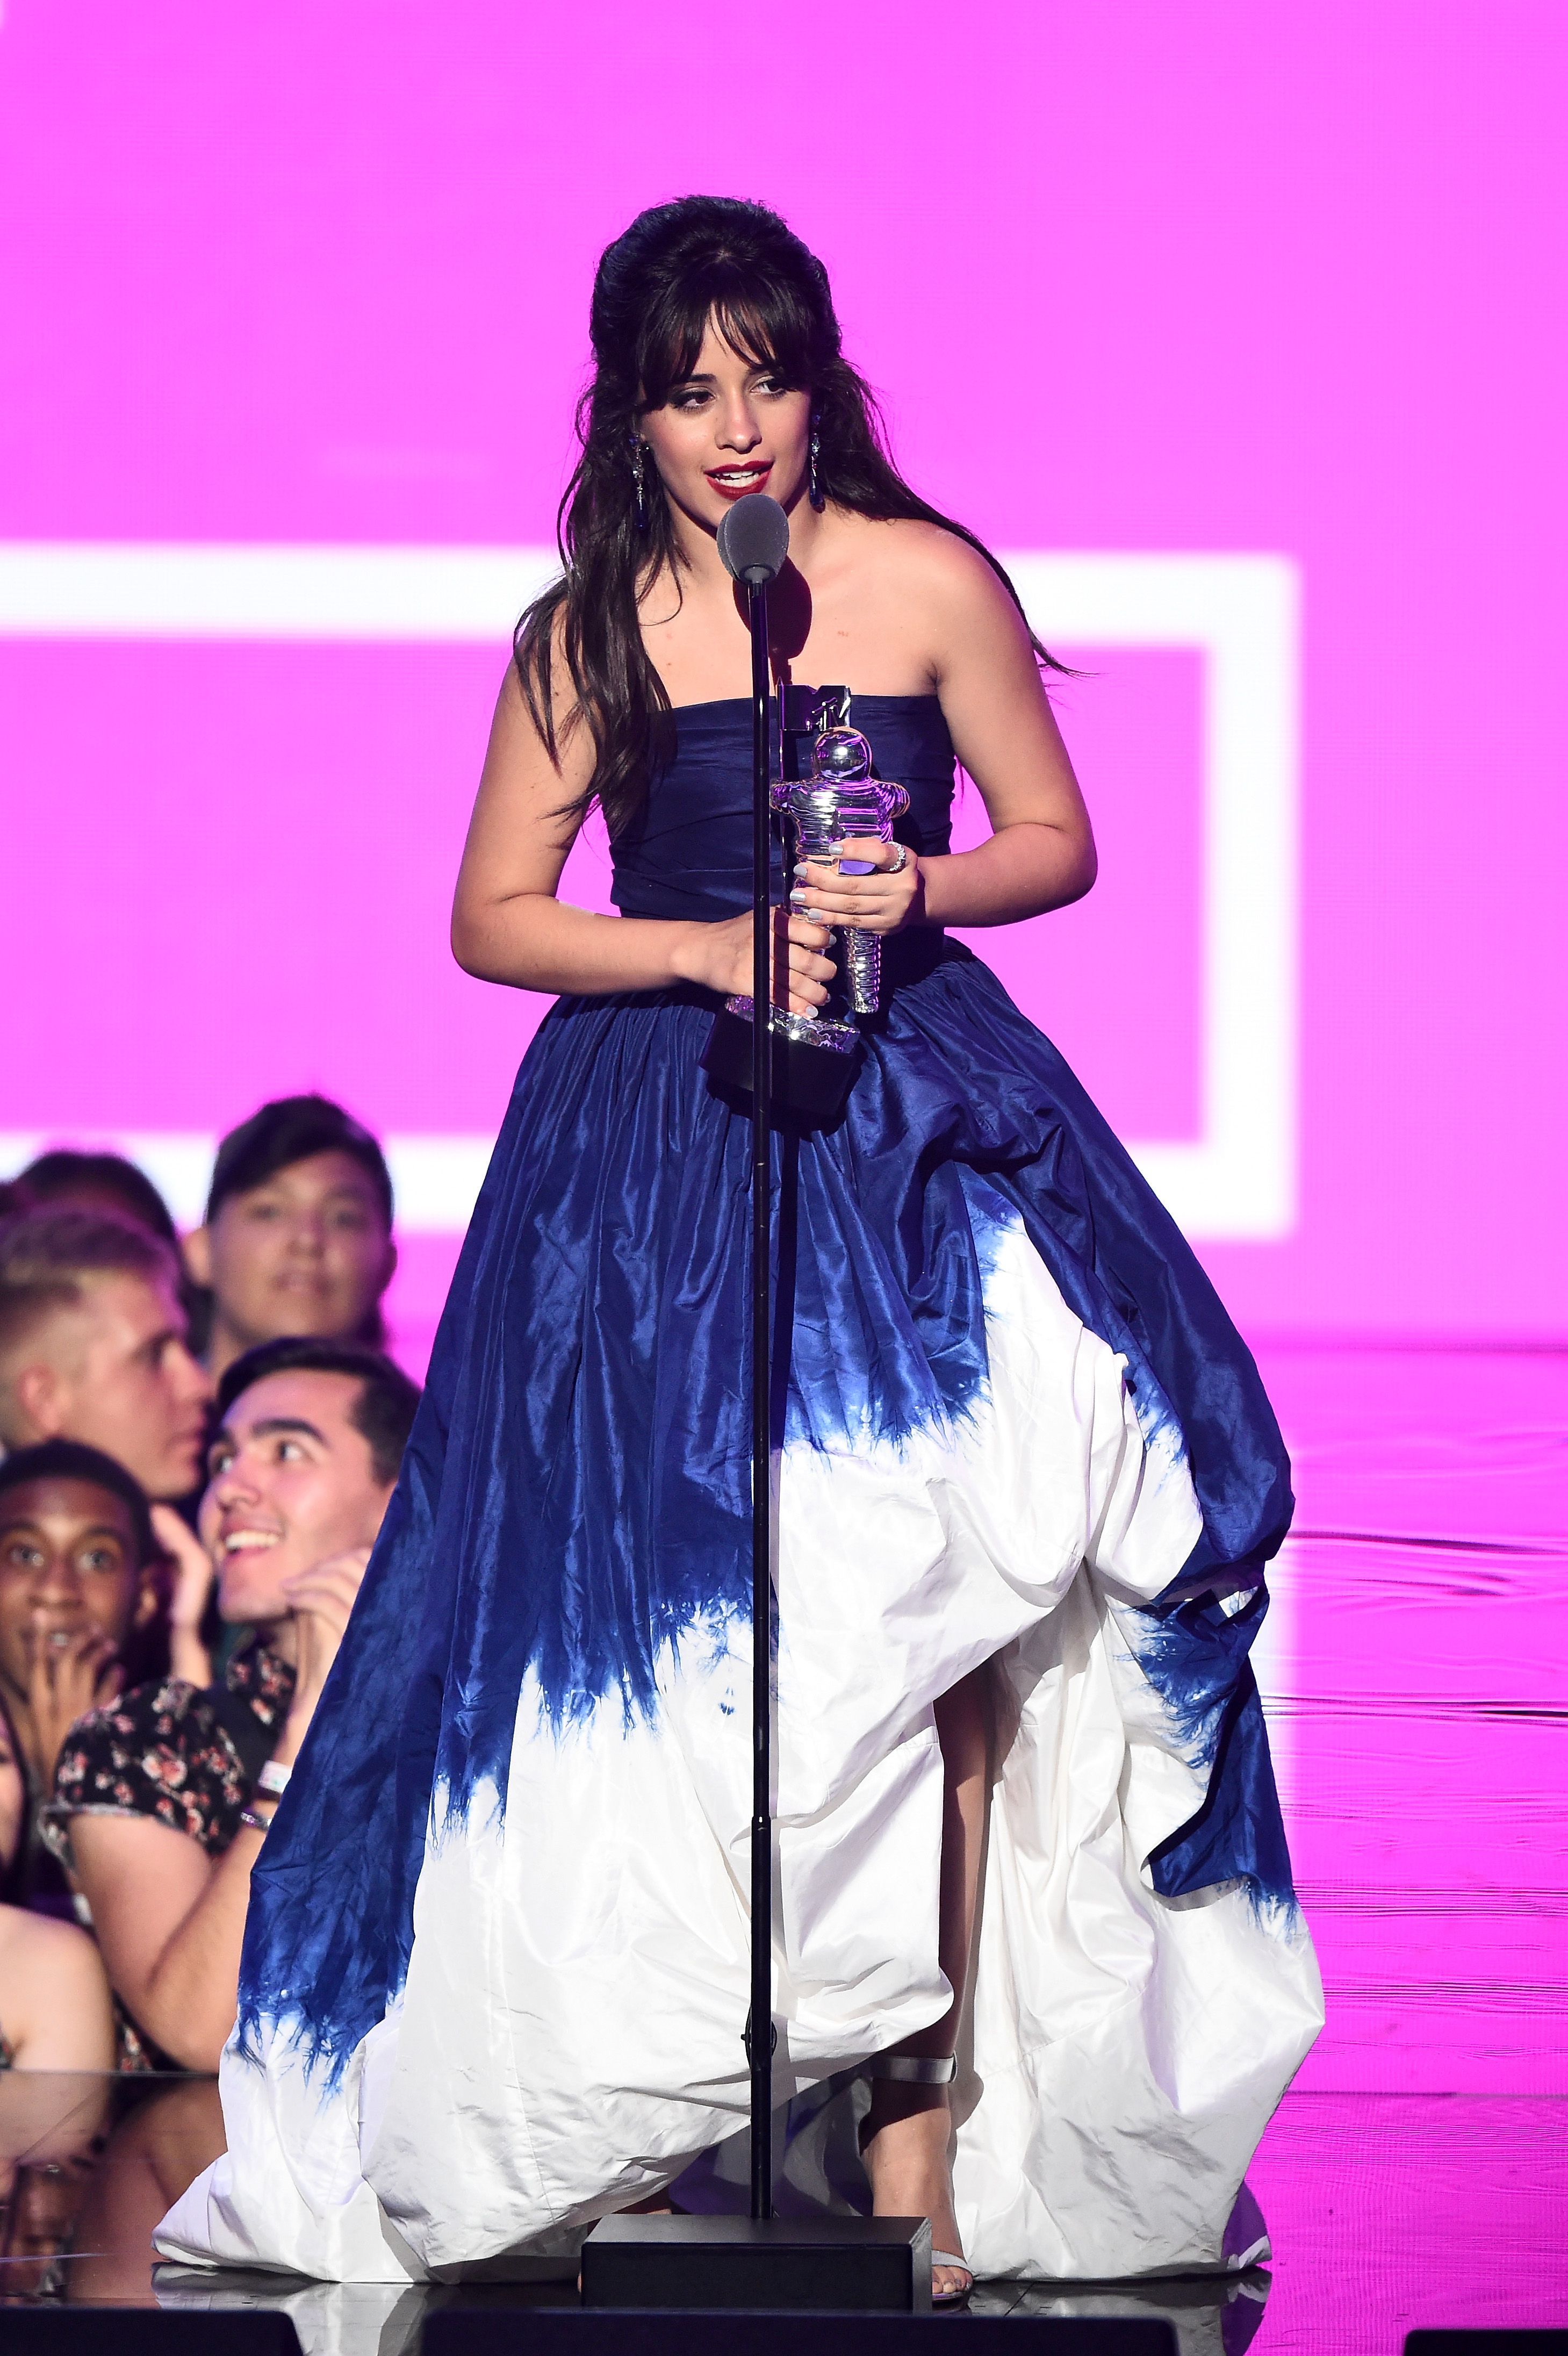 Camila Cabello accepts the award for Video of the Year onstage during the 2018 MTV Video Music Awards at Radio City Music Hall on August 20, 2018 in New York City.